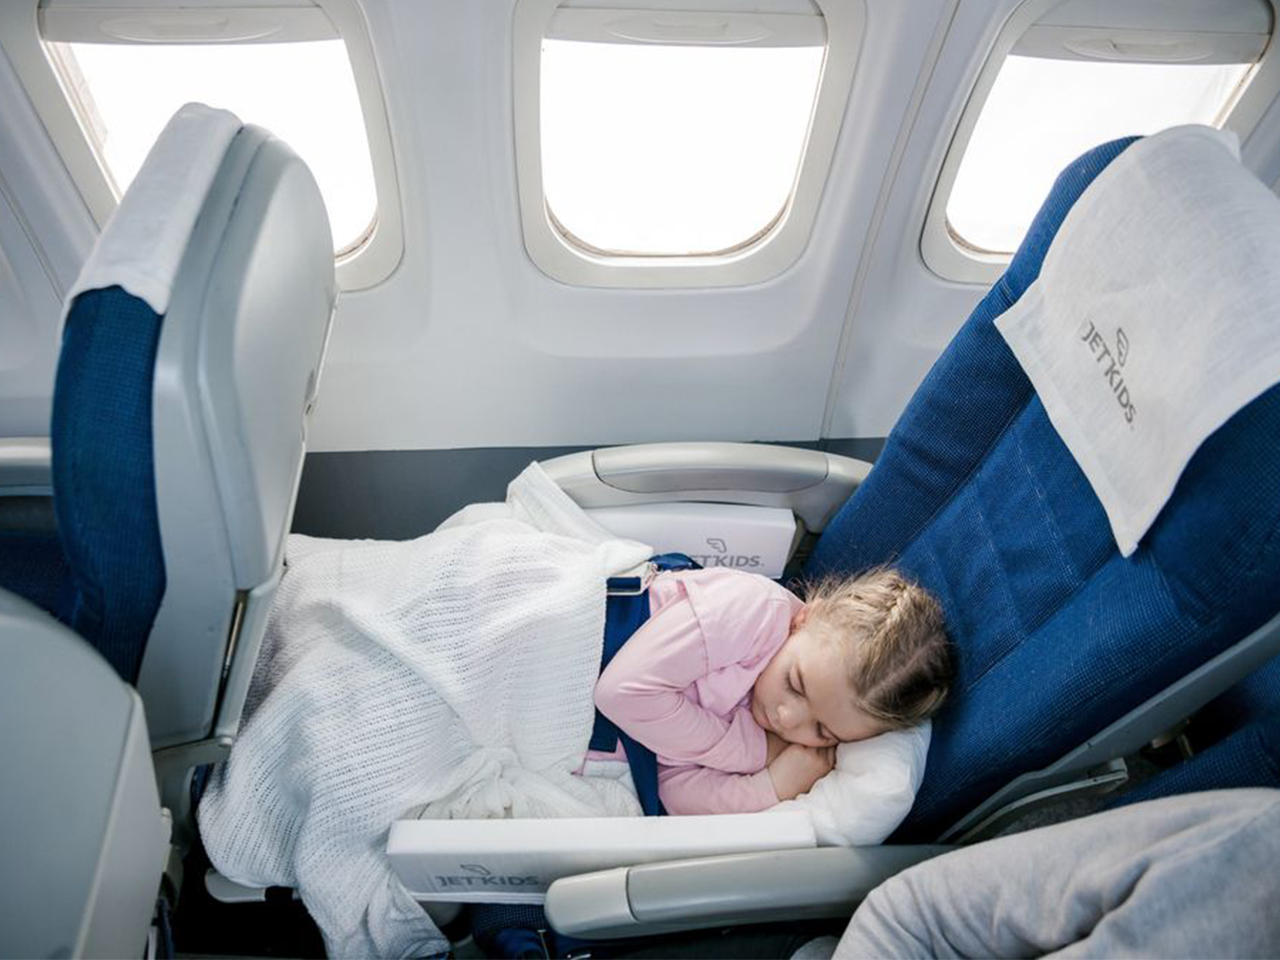 Little girl sleeping comfortably on a plane